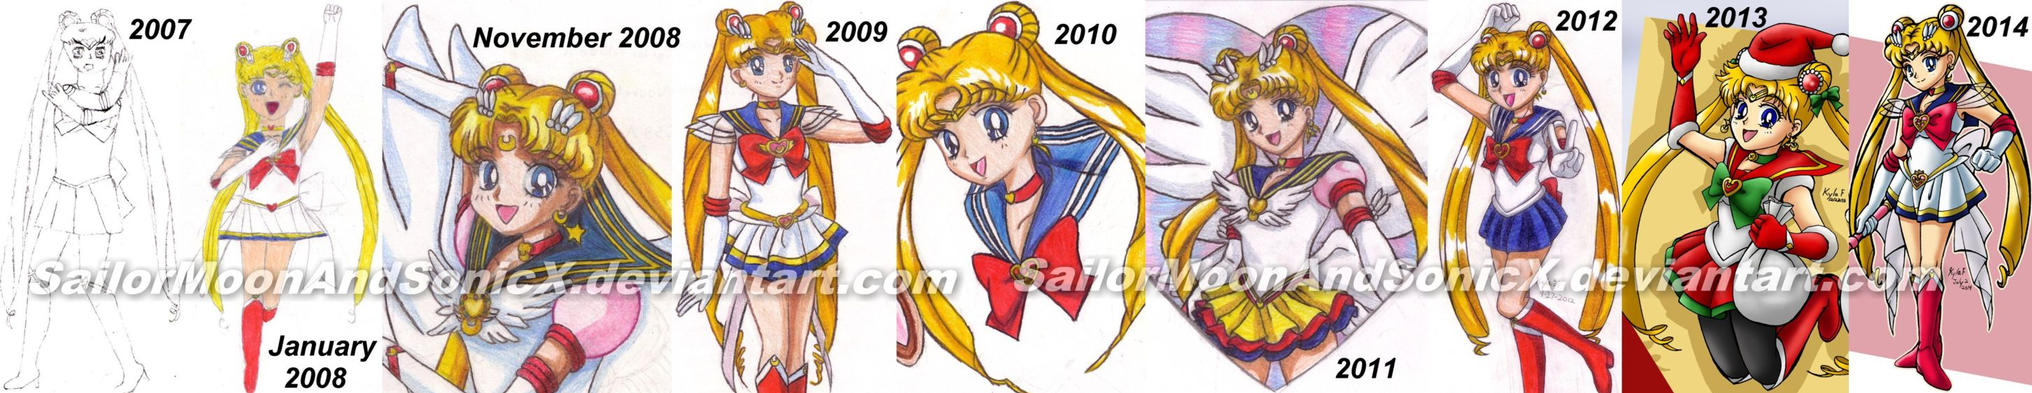 Sailor Moon Improvement: 2007 to 2014 by SailorMoonAndSonicX